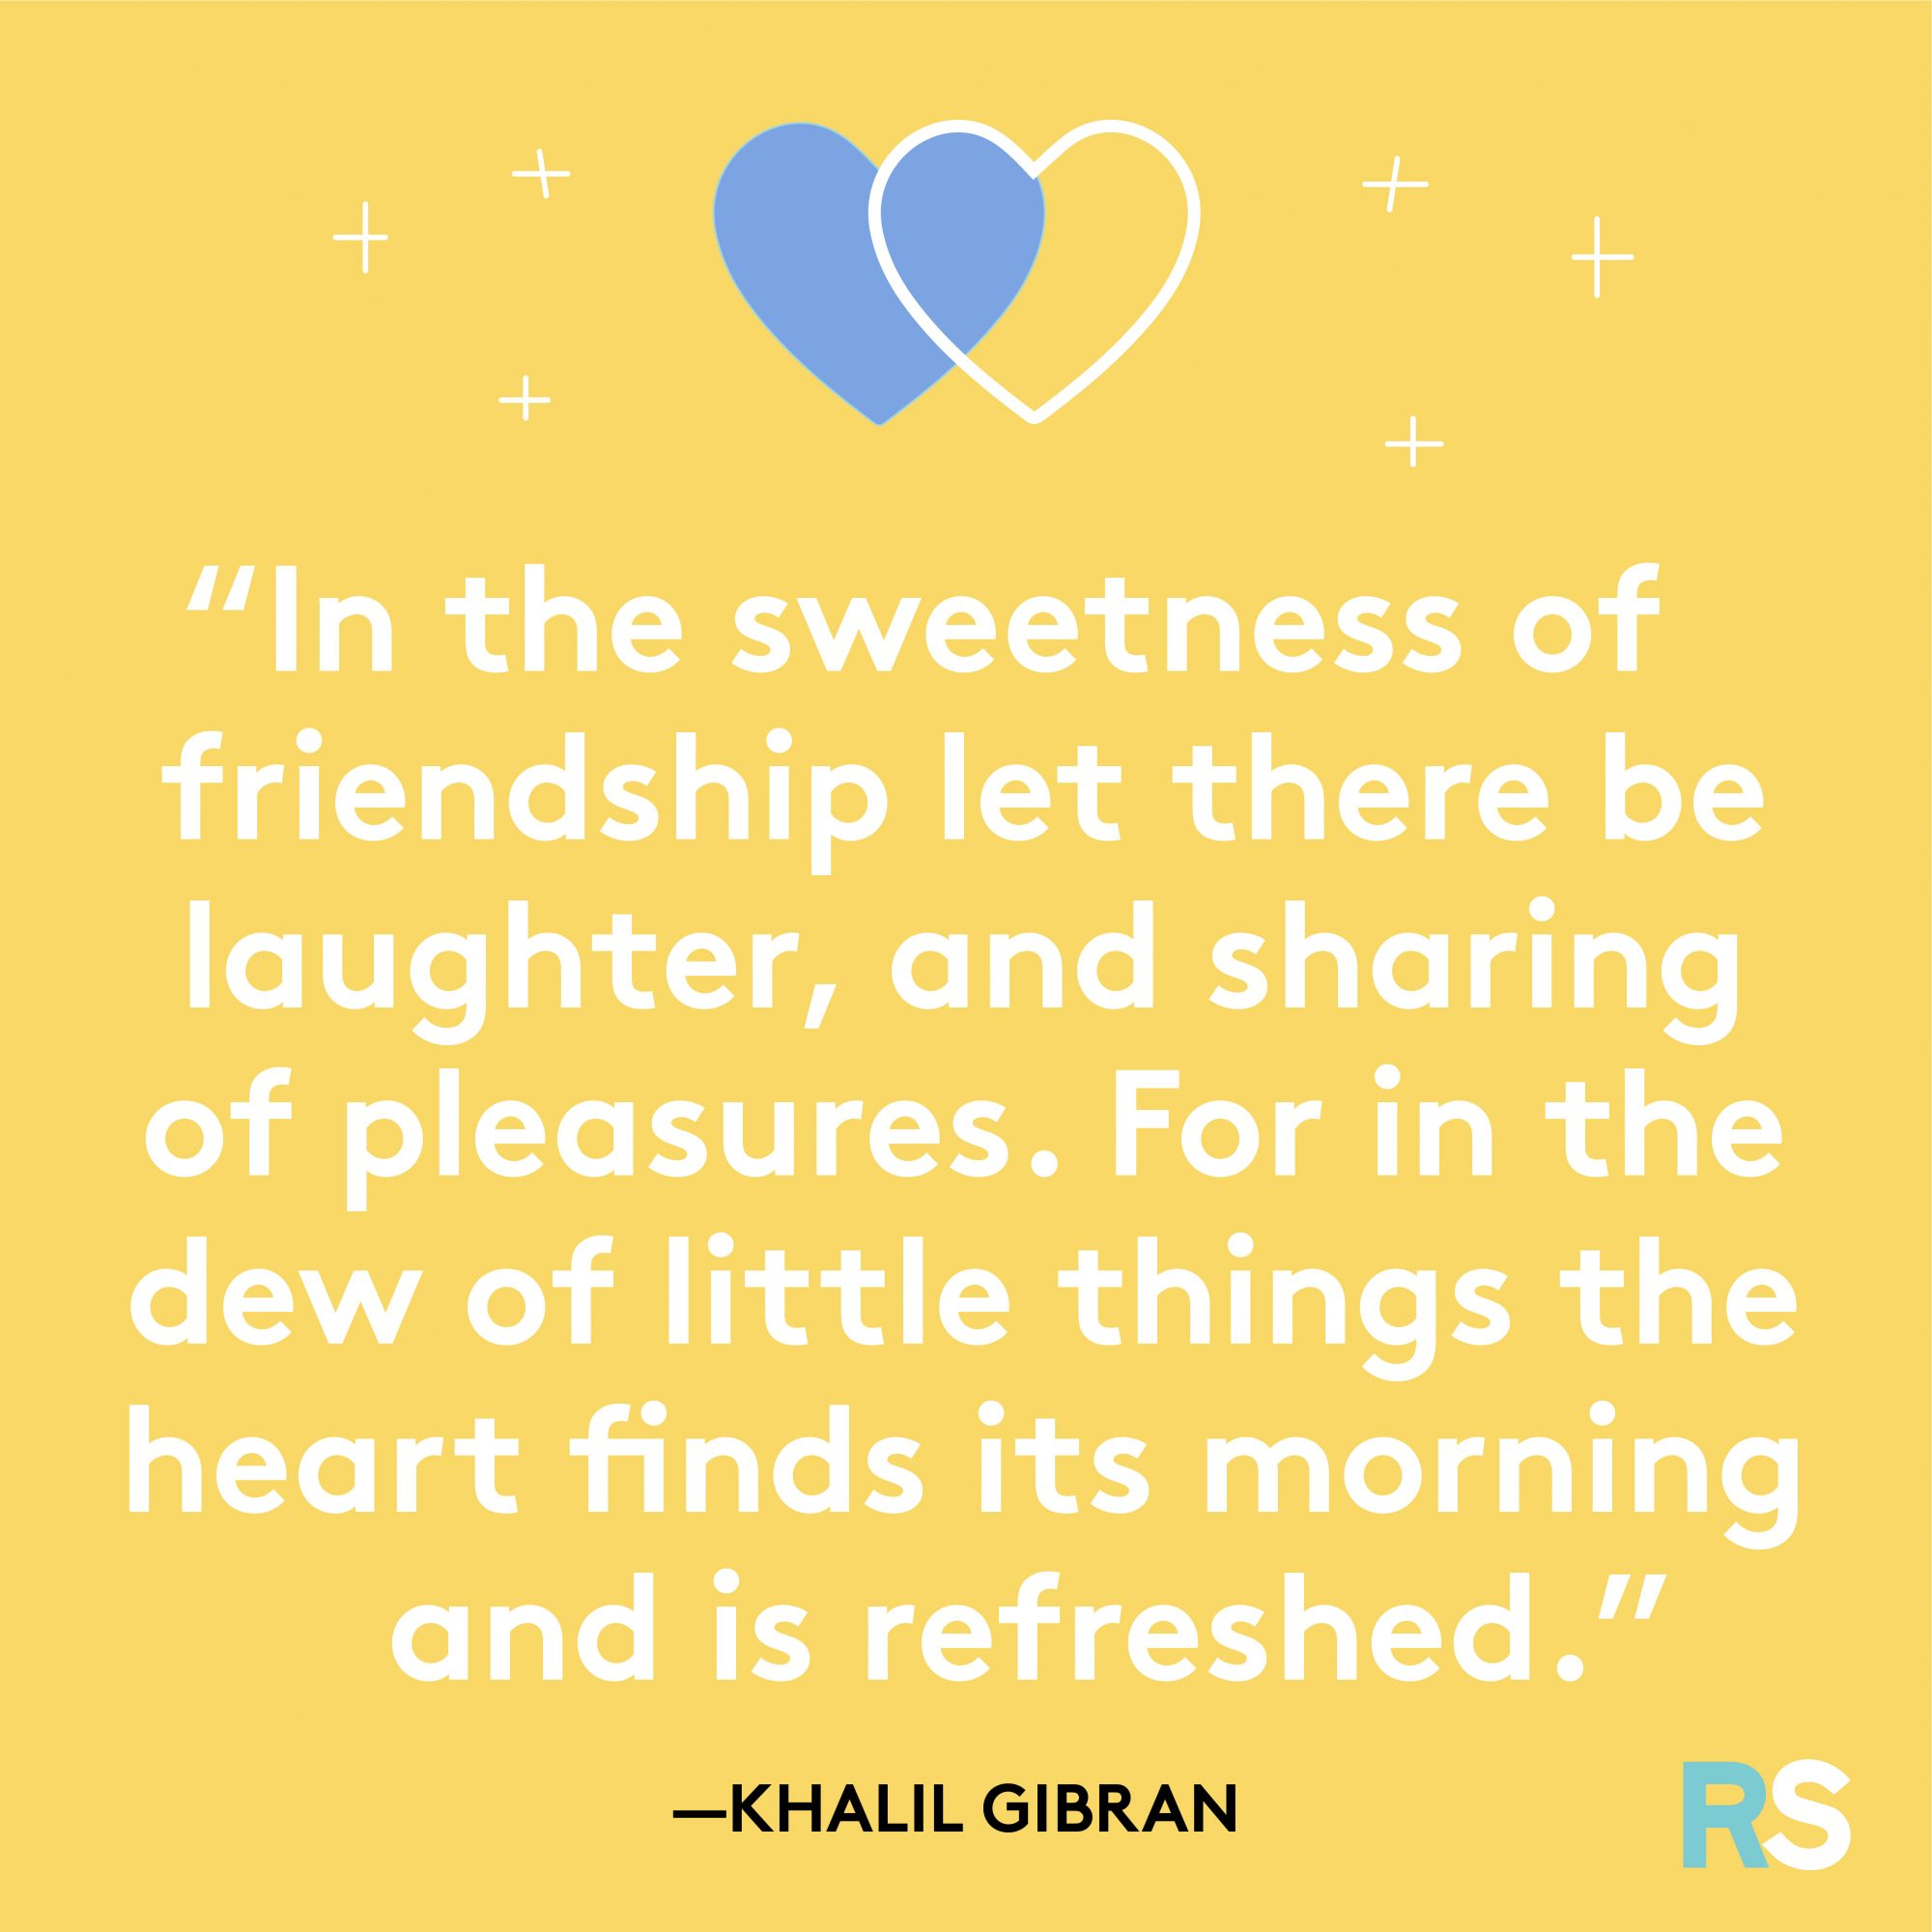 The Heart Finds its Morning Quote by Khalil Gibran